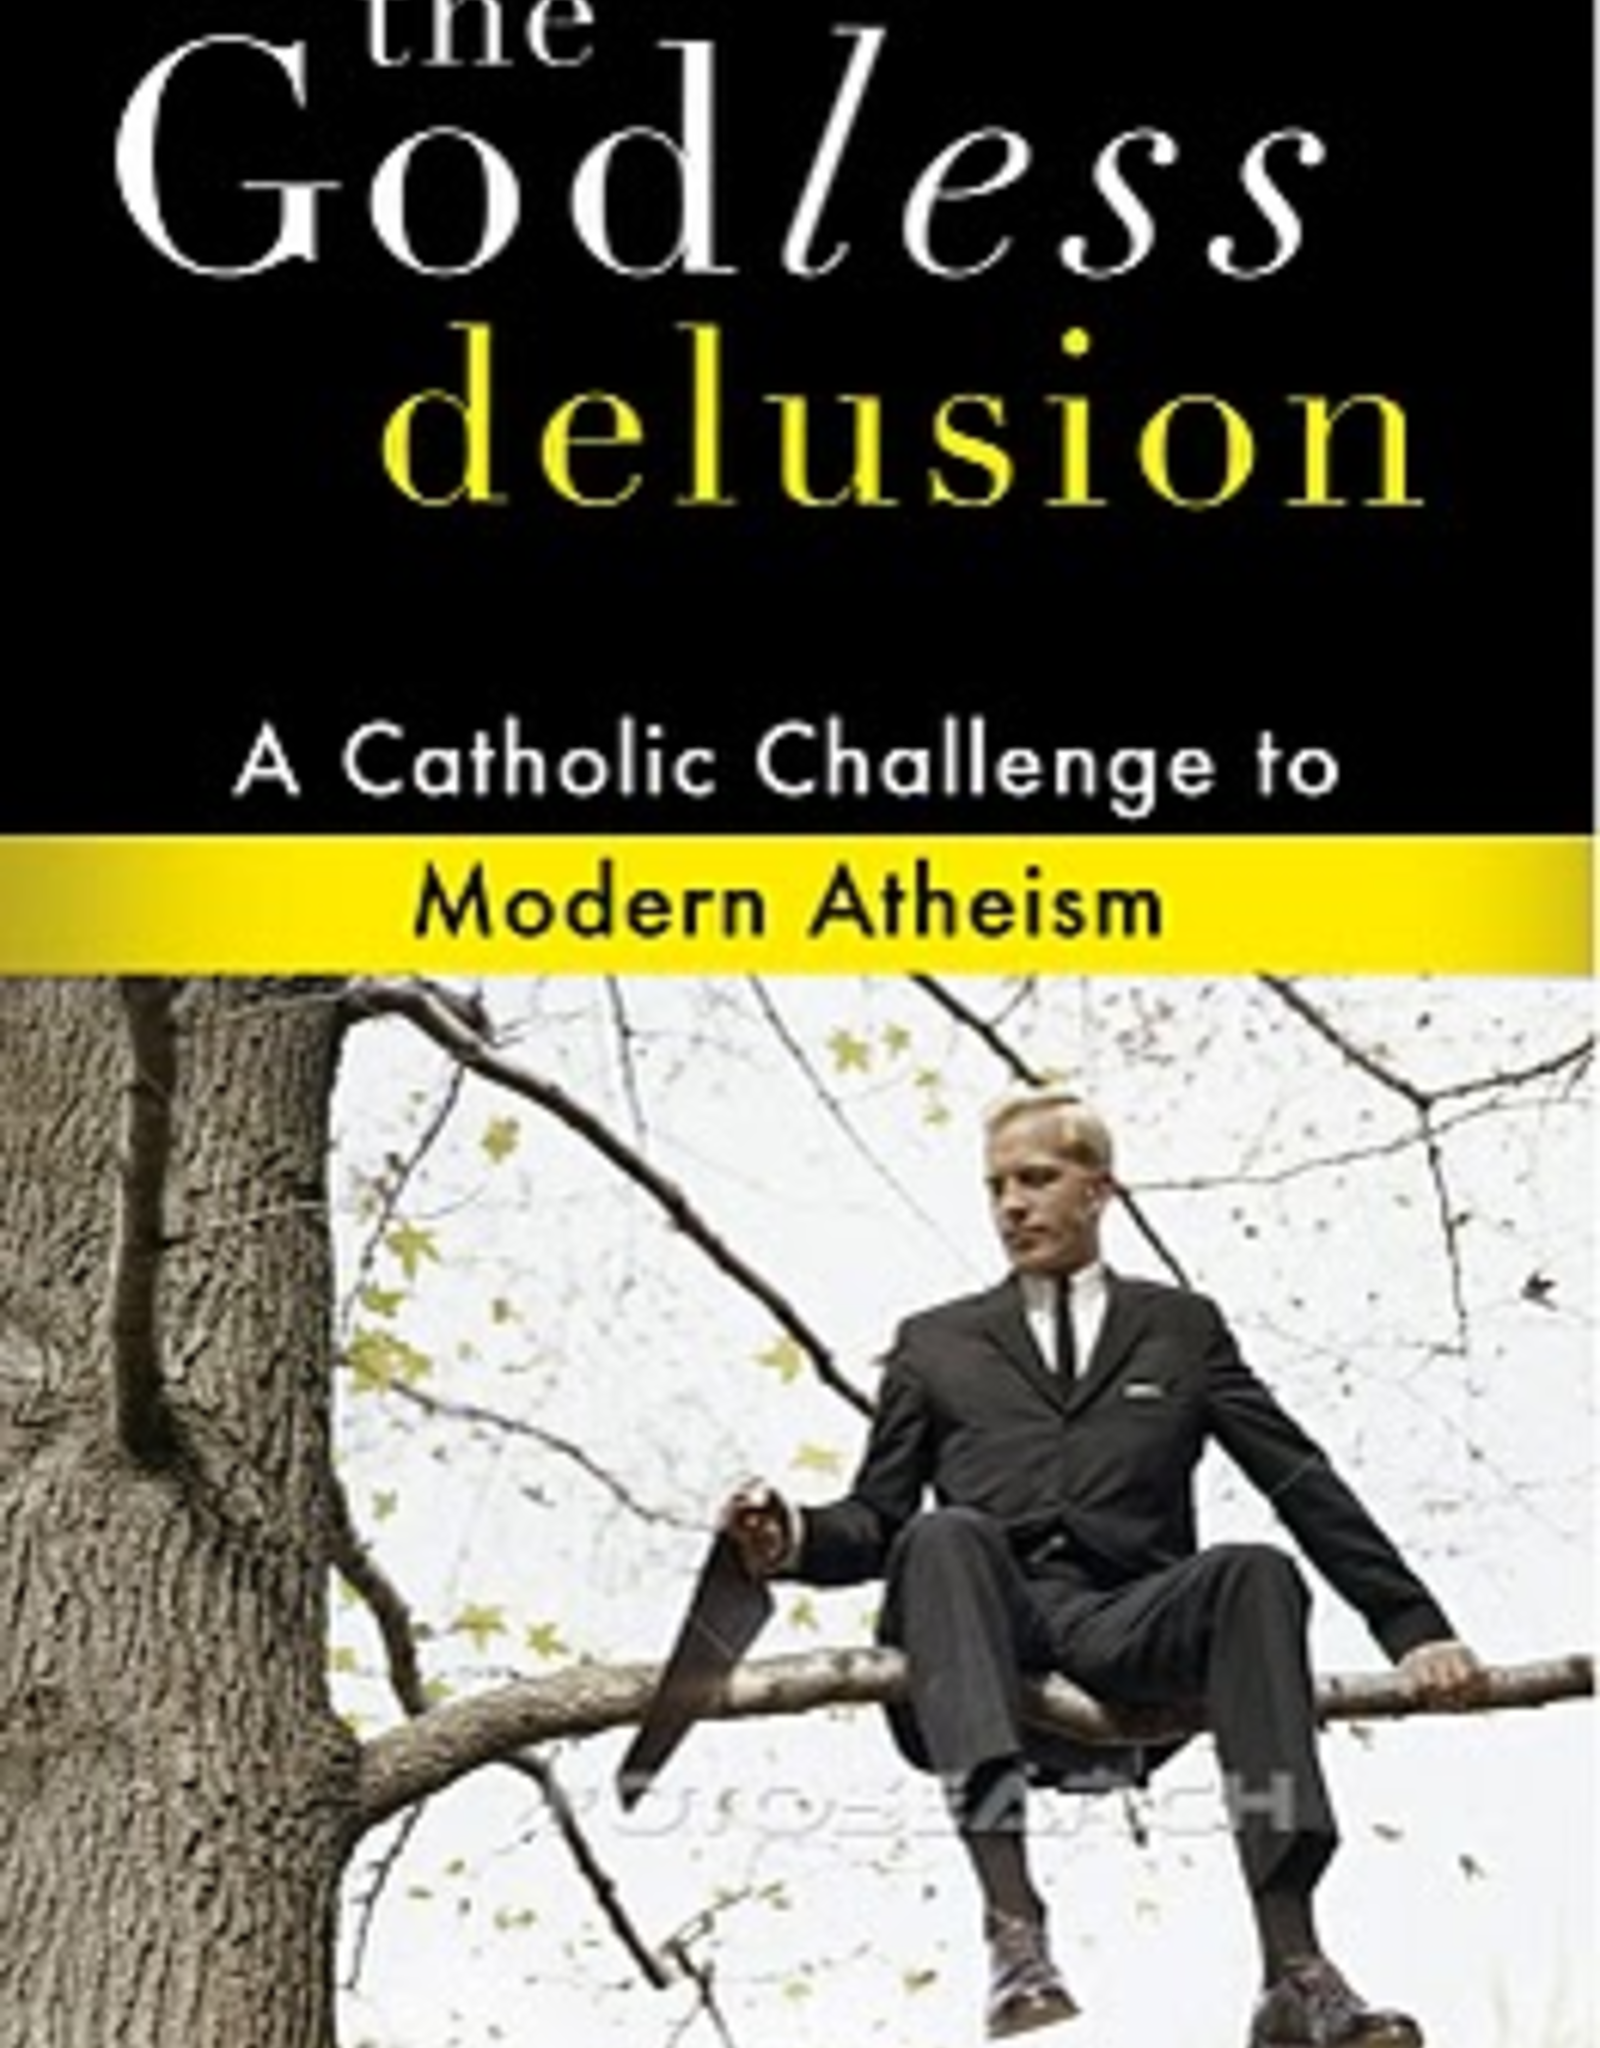 Our Sunday Visitor The Godless Delusion: A Catholic Challenge to Modern Atheism, by Patrick Madrid and Kenneth Hensley